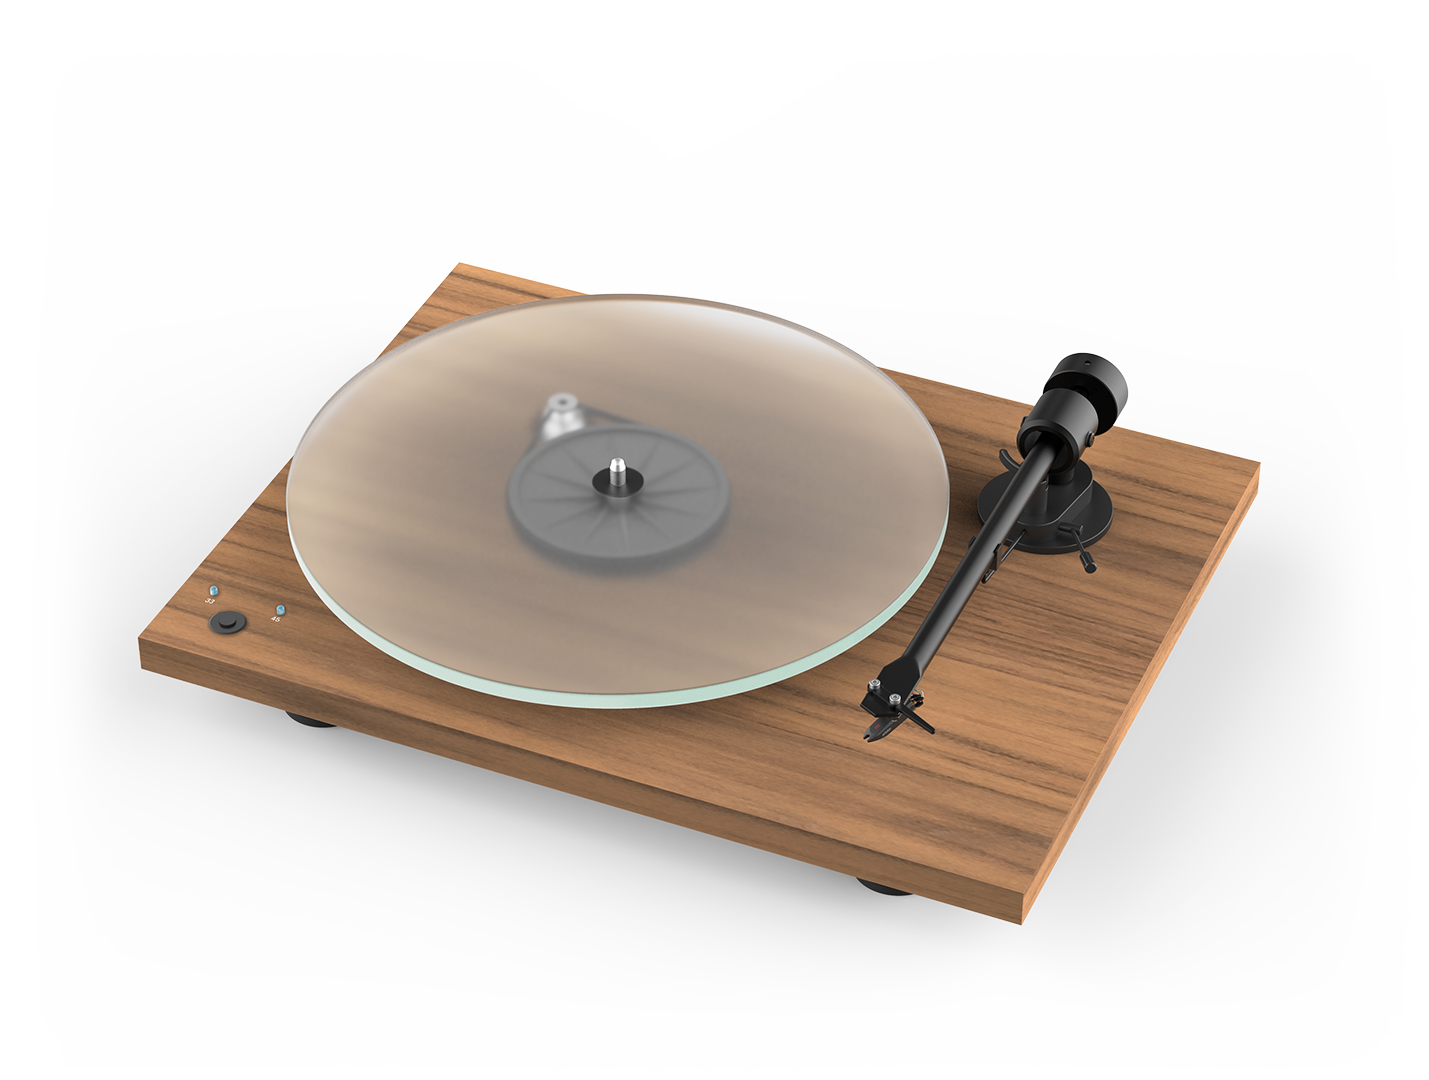 T1 Phono SB – Pro-Ject Audio Systems